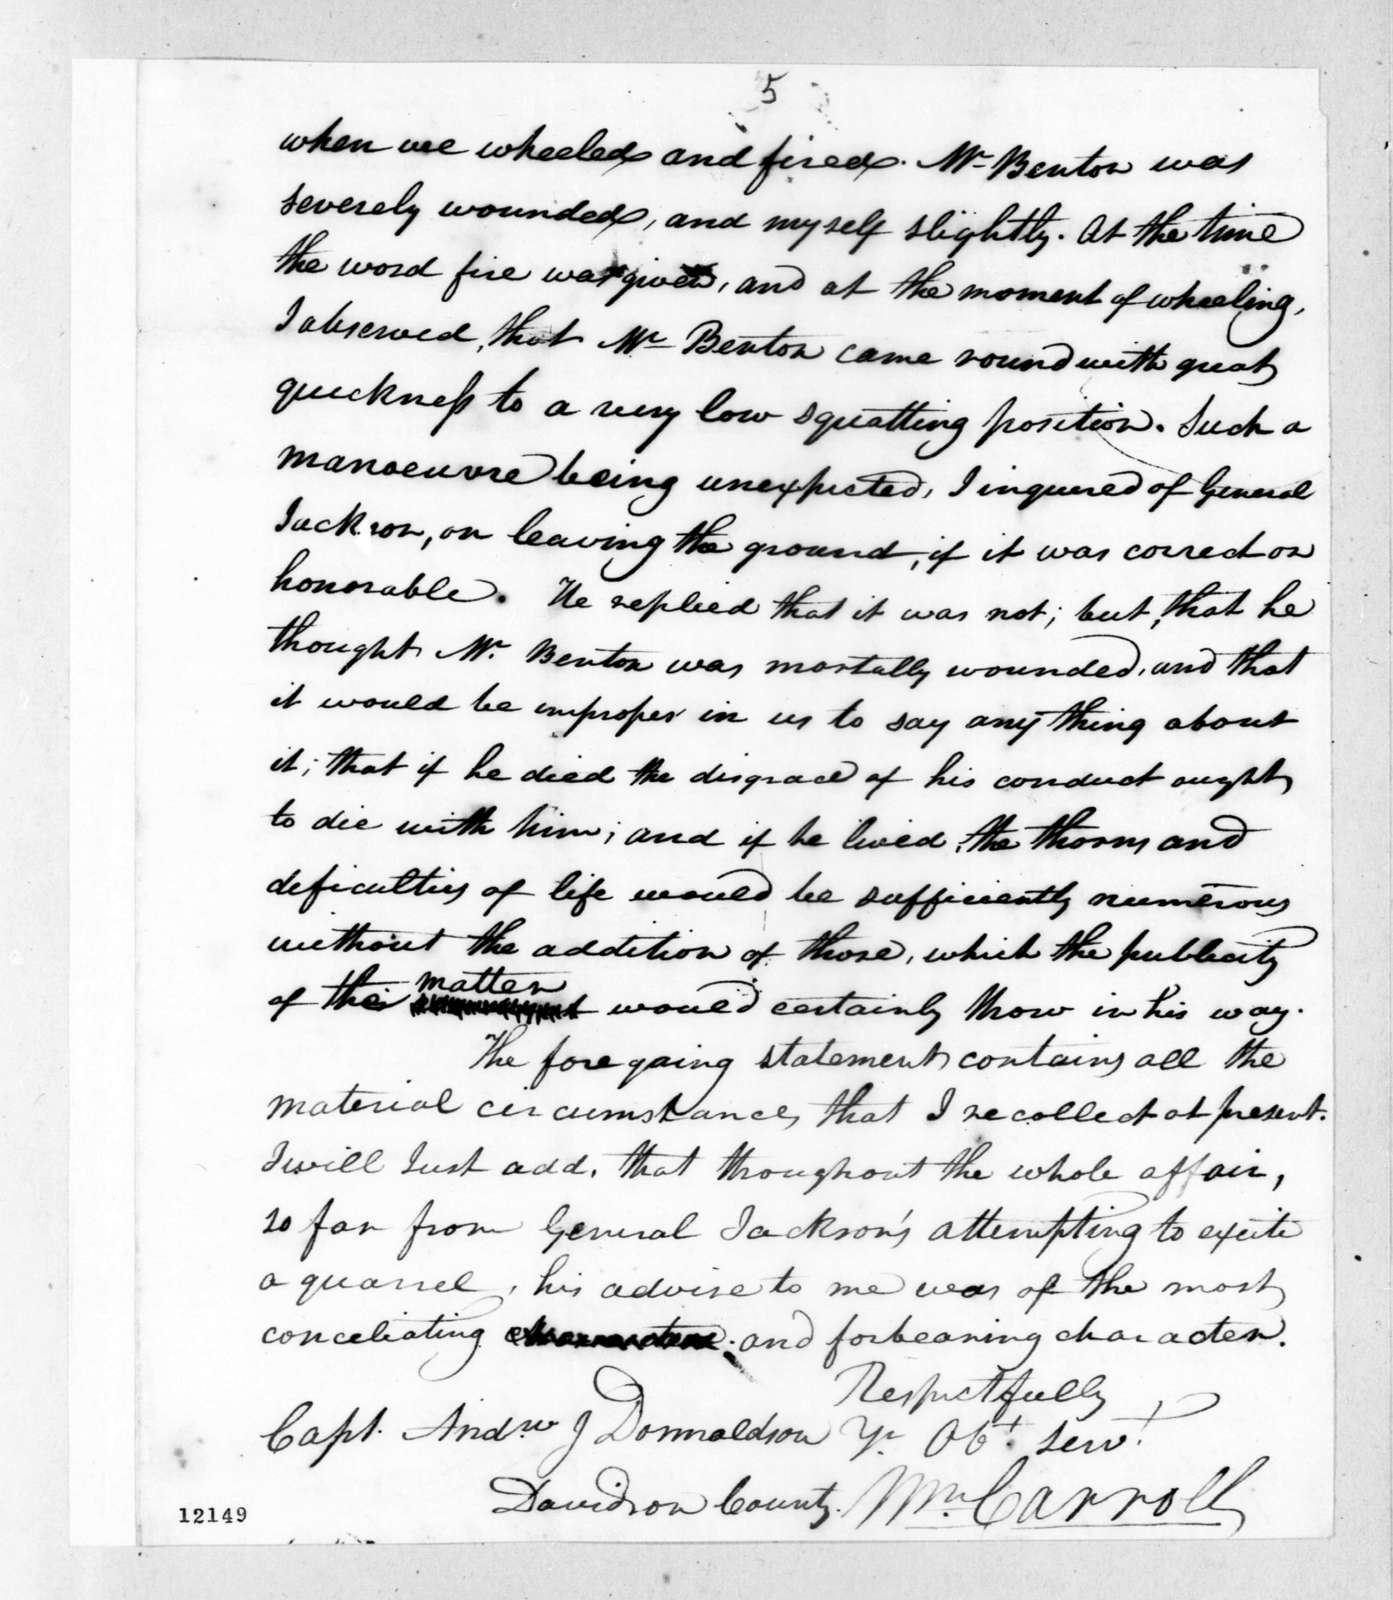 William Carroll to Andrew Jackson Donelson, October 4, 1824